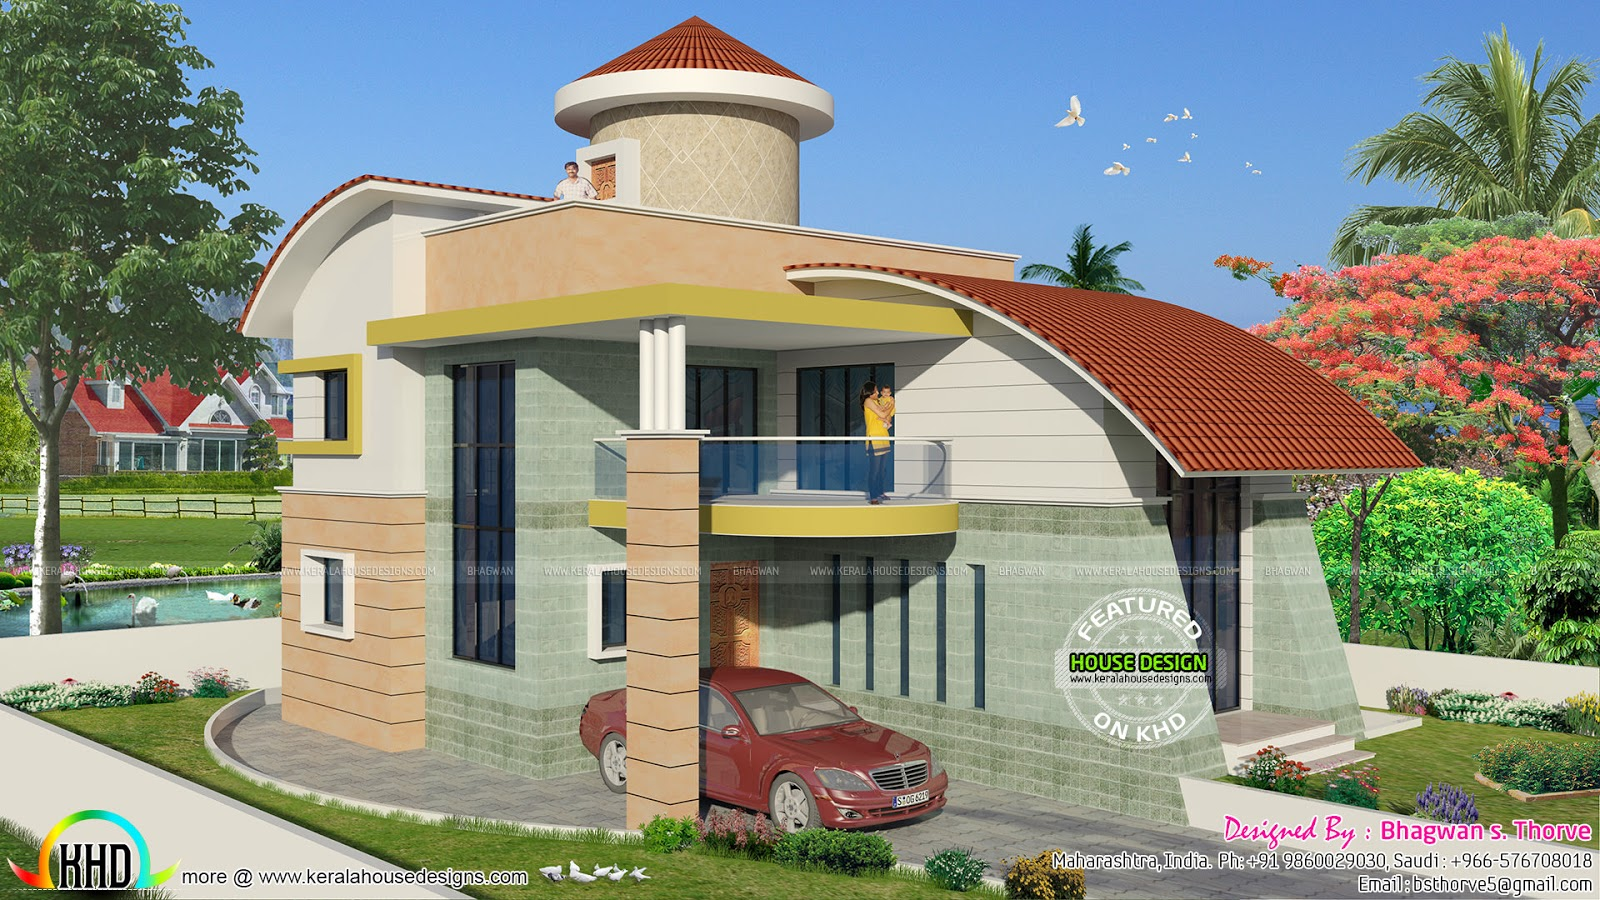 north indian house plan 2080 sq ft kerala home design bloglovin north indian house plan 2080 sq ft